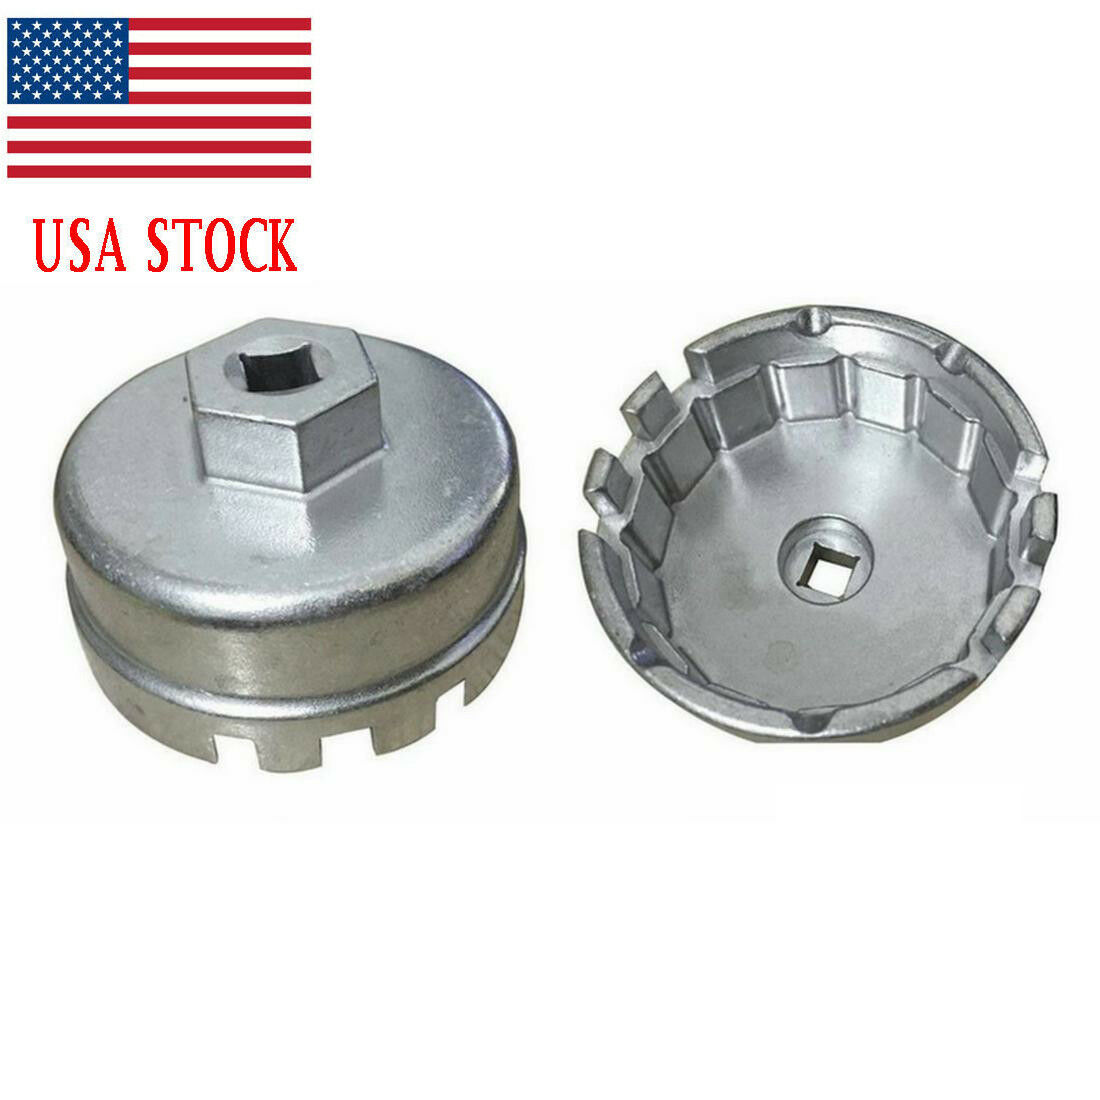 64.5mm Oil Filter Wrench Housing Tool For Toyota Lexus